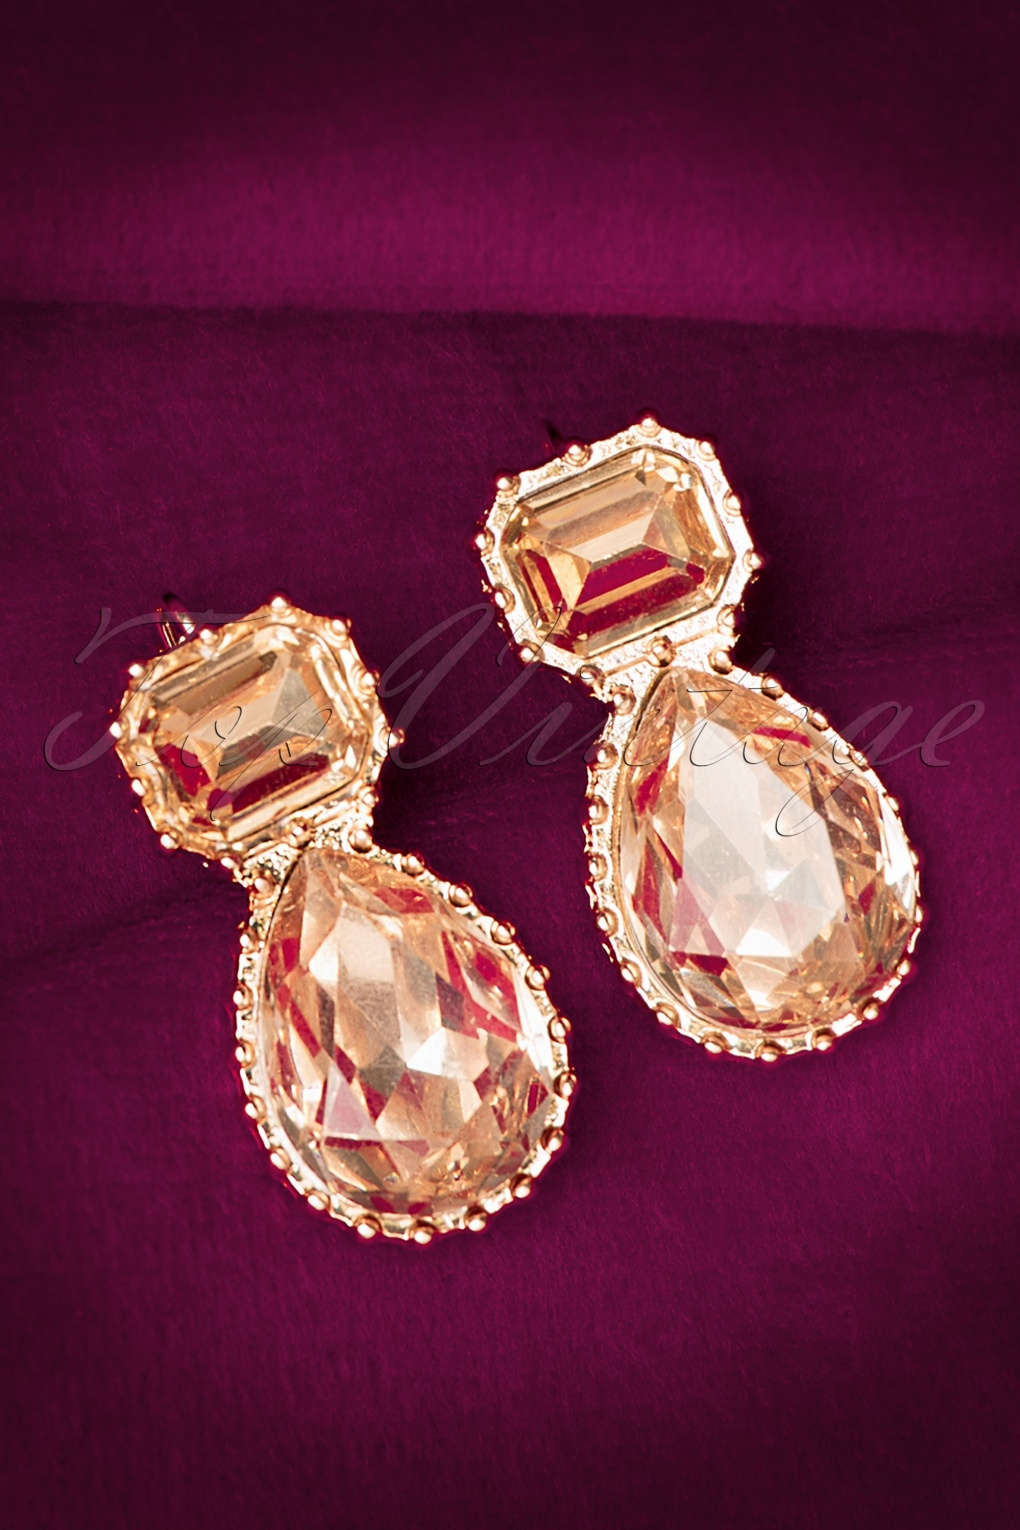 Vintage Style Jewelry, Retro Jewelry 30s Mathilda Earrings in Gold £11.25 AT vintagedancer.com